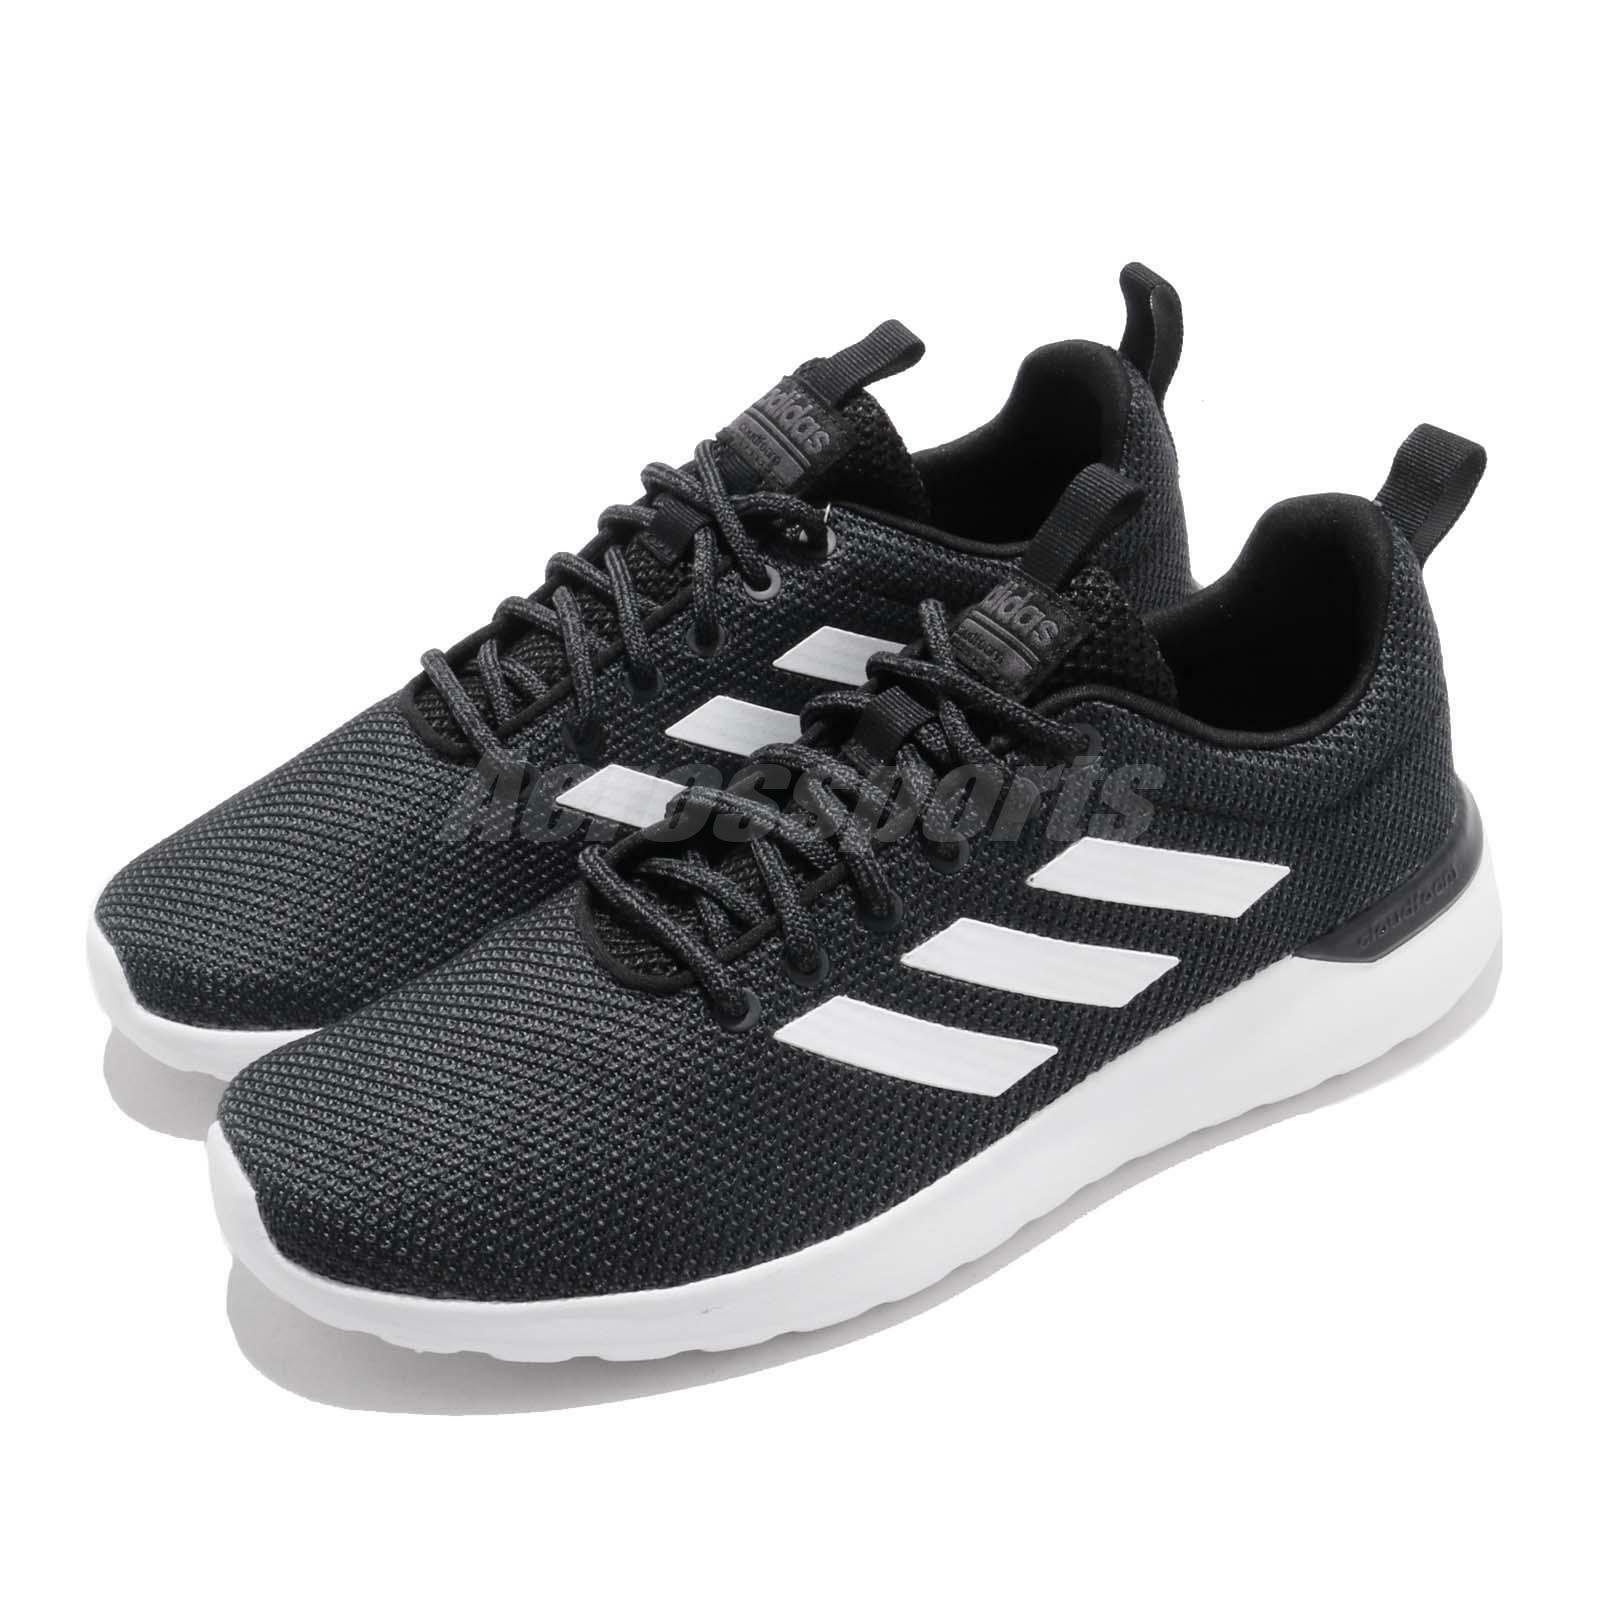 Adidas Lite Racer CLN White Grey Black Men Running Casual shoes Sneakers F34573